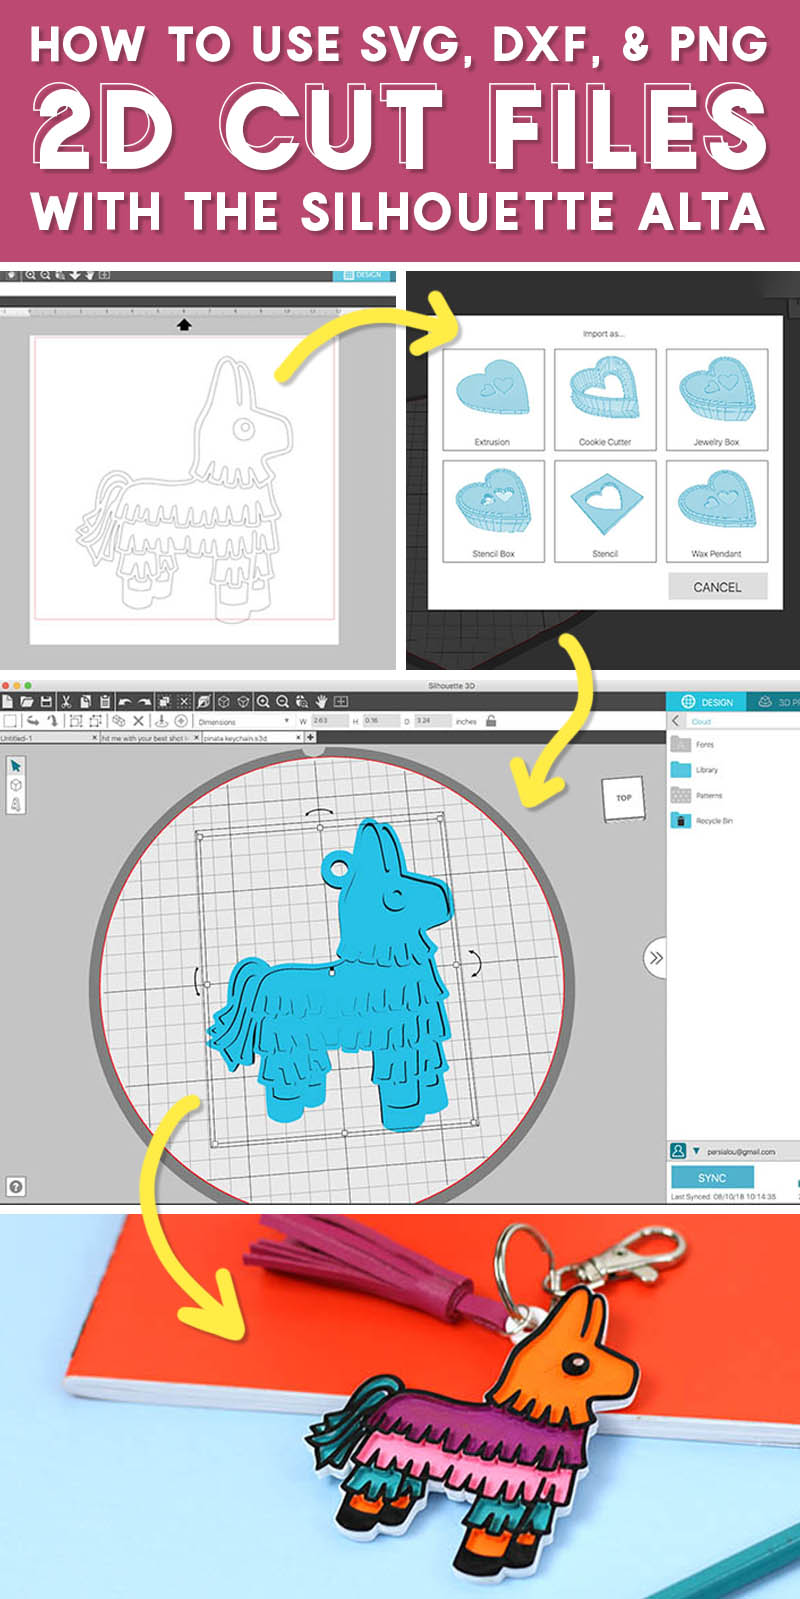 text reads how to use svg, dxf, & png 2D cut files with the Silhouette Alta and is followed by a collage of images showing screencaps of the Silhouette 3D software and a finished 3D printed piñata shaped keychain